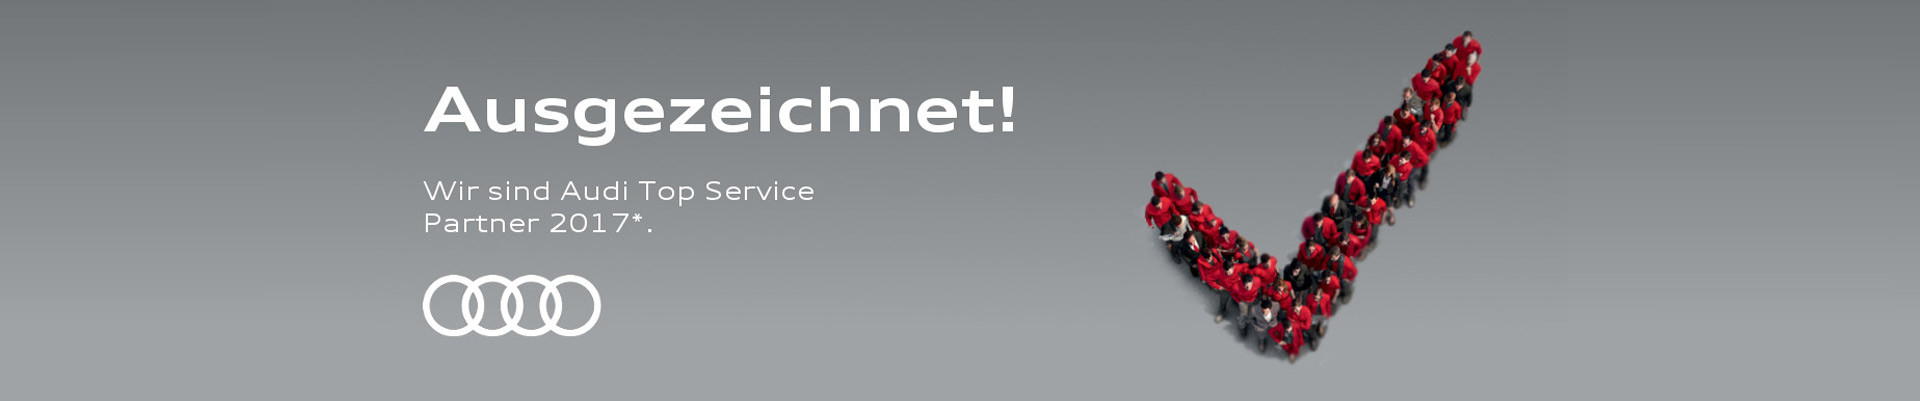 slideshow-gehlert-top-service-partner.jpg